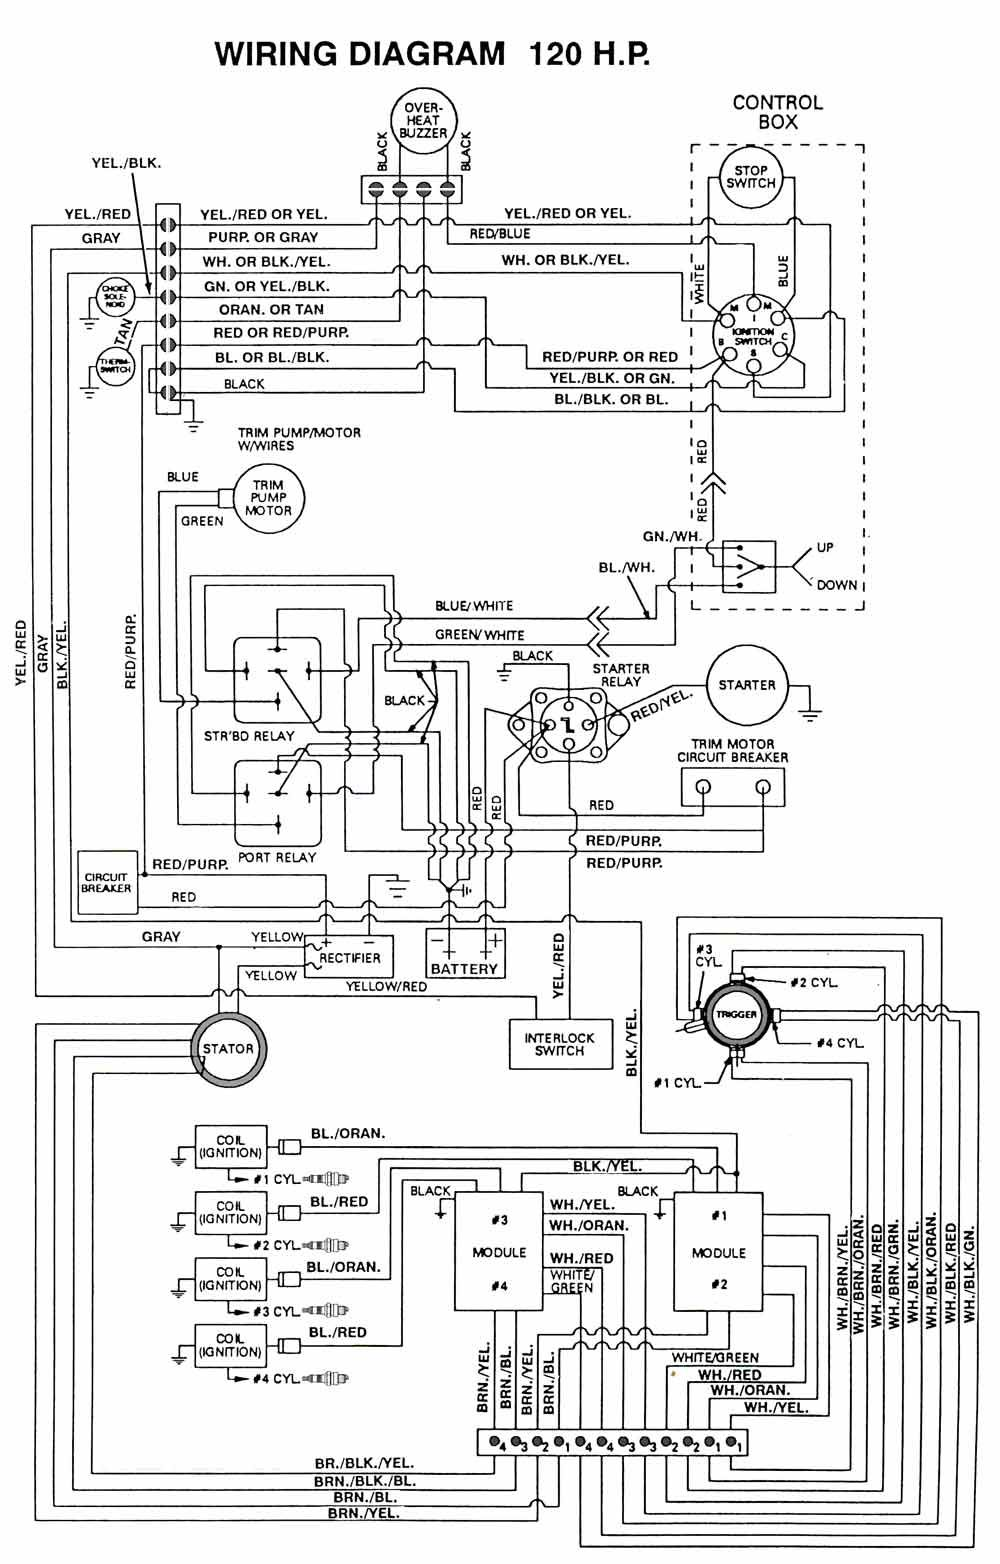 hight resolution of image result for wiring diagram for 1990 mercury force 120 hp outboard motor